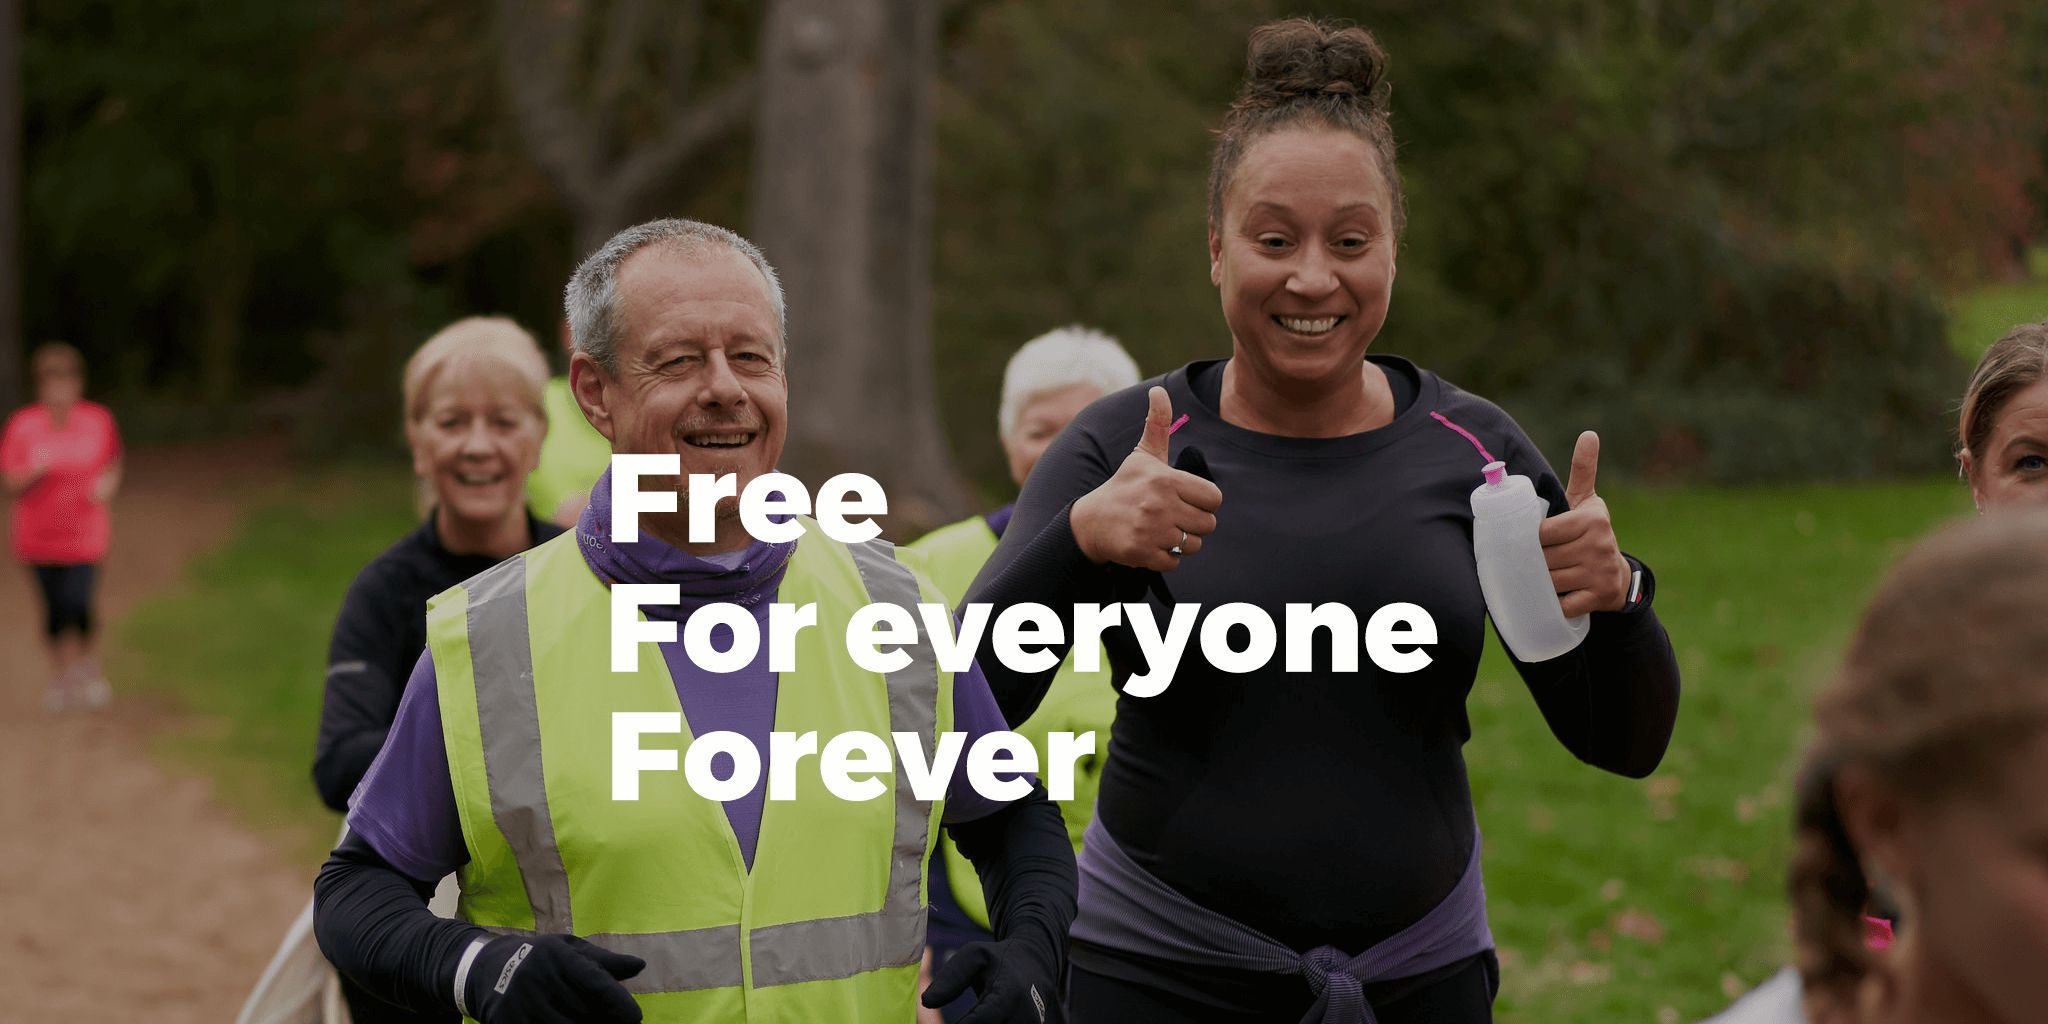 Free, for all, forever